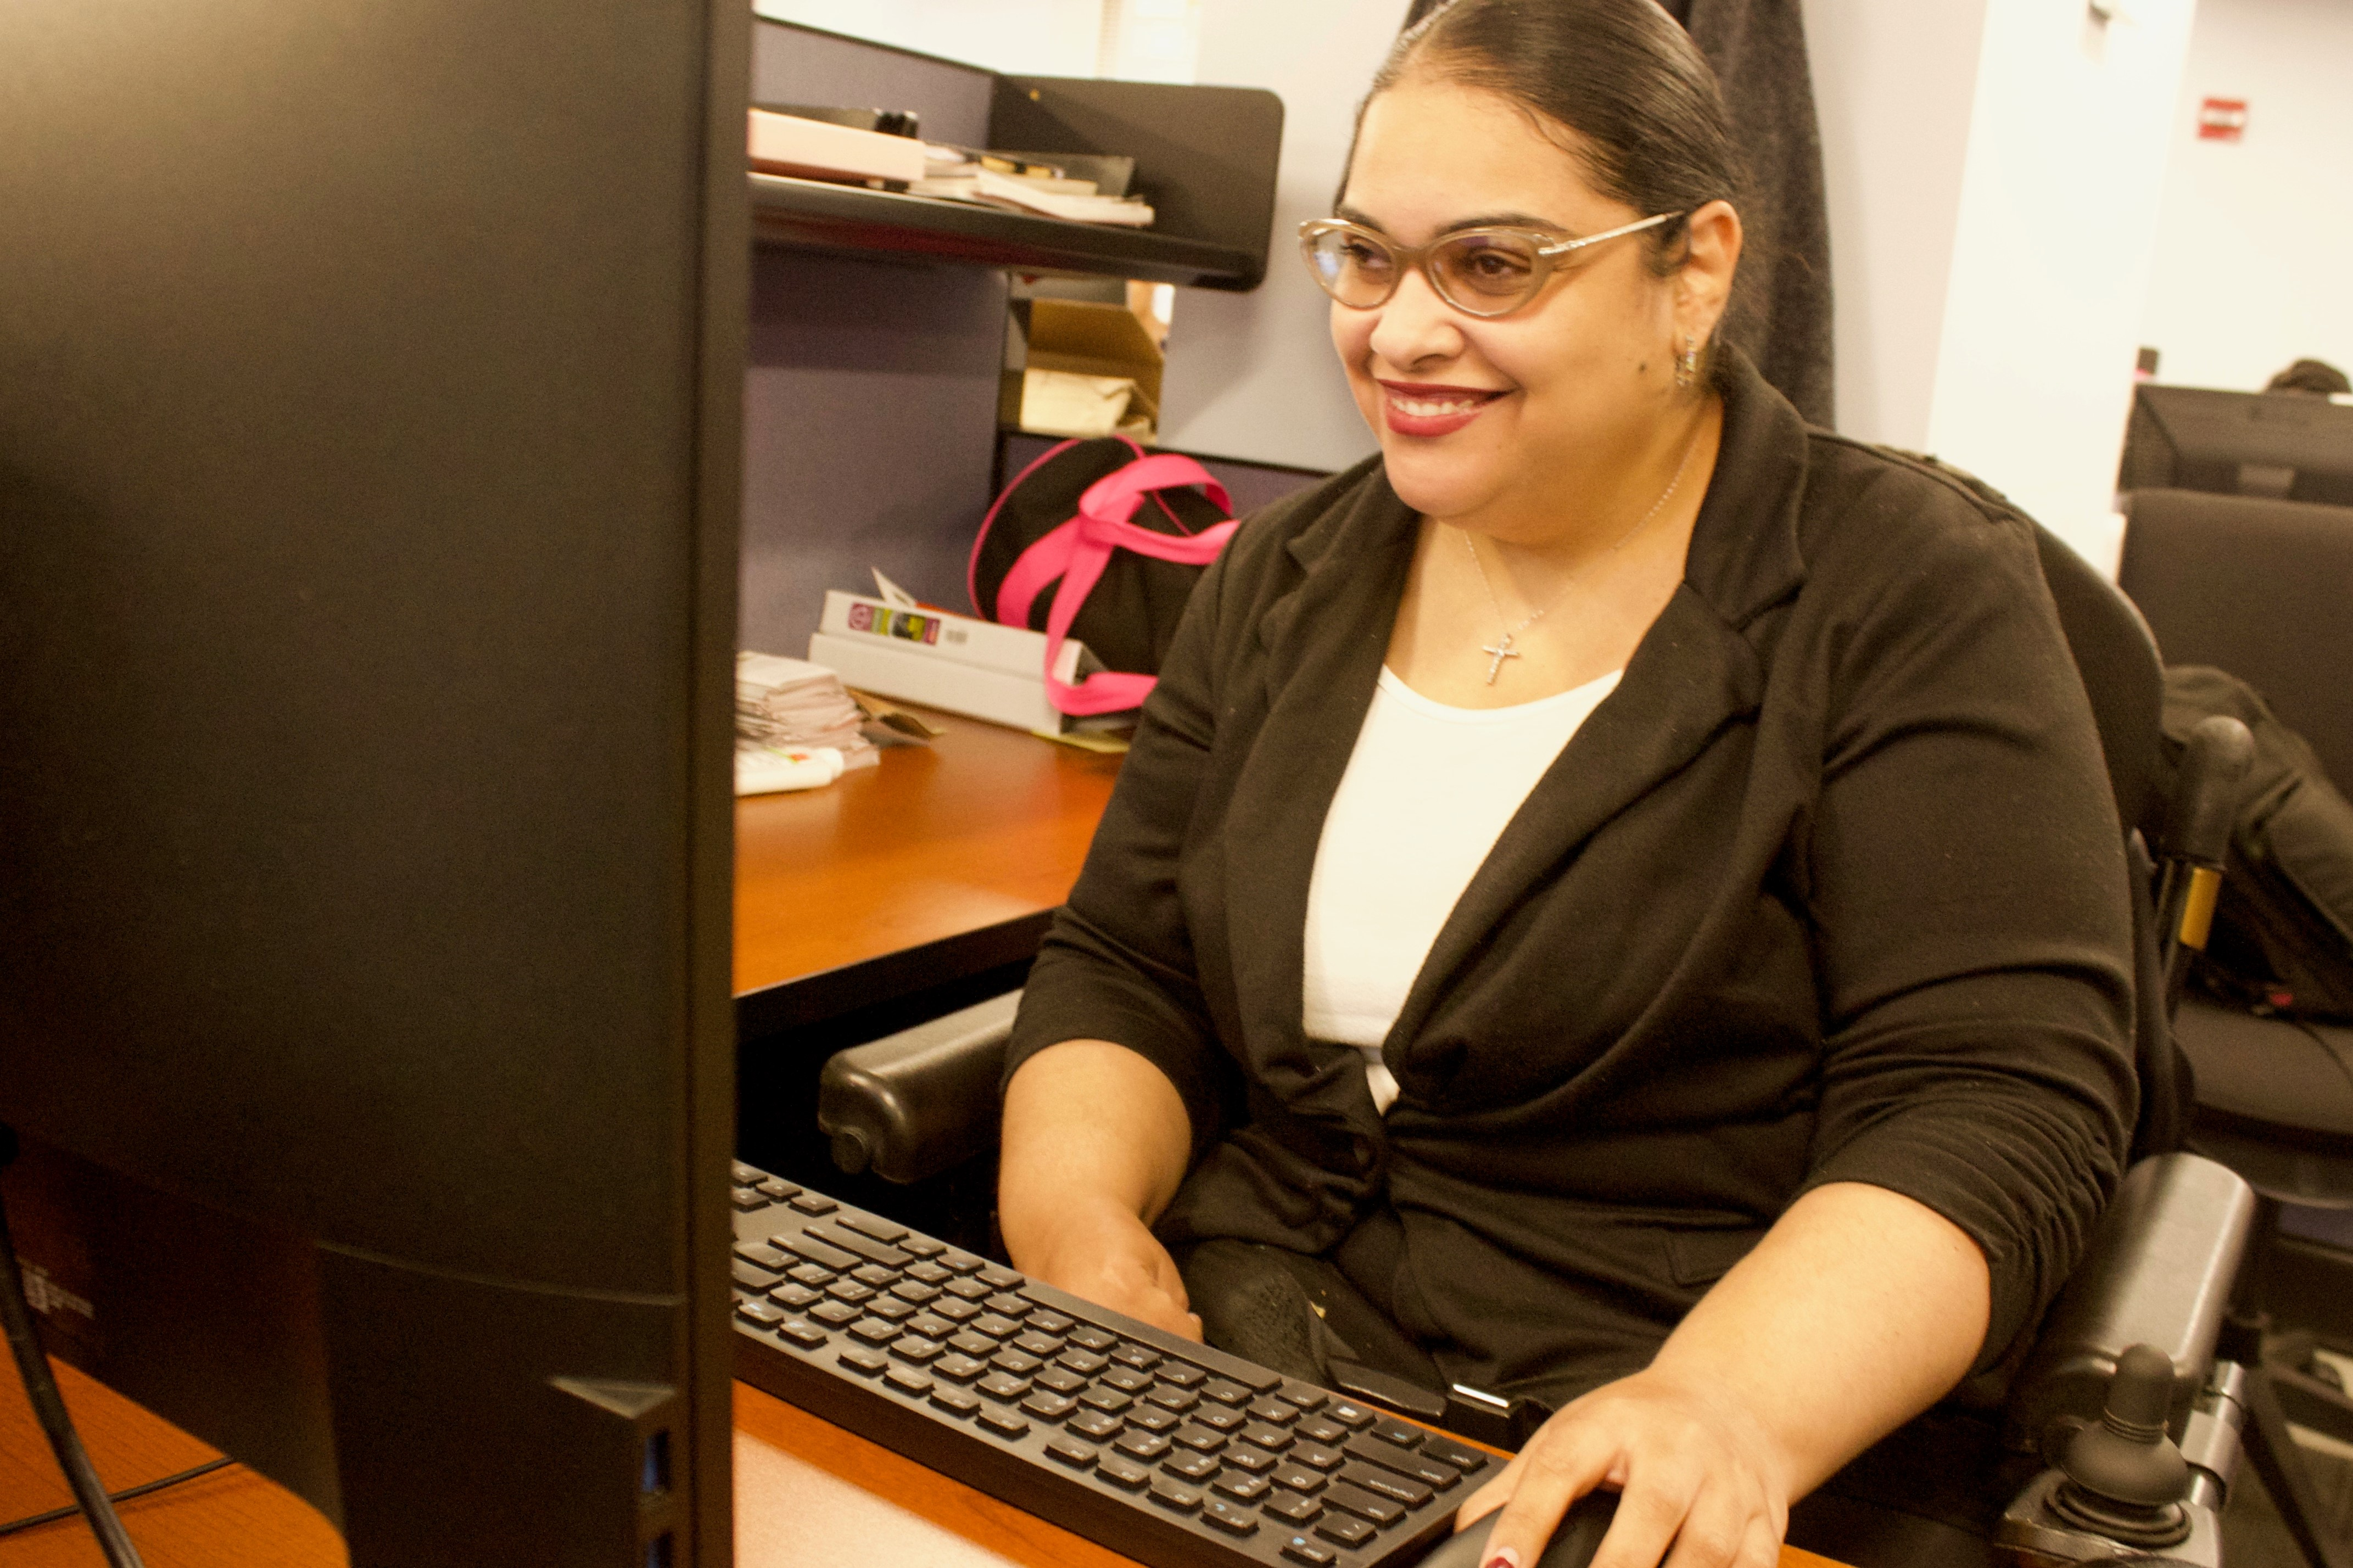 Crystal Rivera, Program Officer for Special Projects, Office of Financial Empowerment/EmpoweredNYC, working diligently on a computer at her desk.